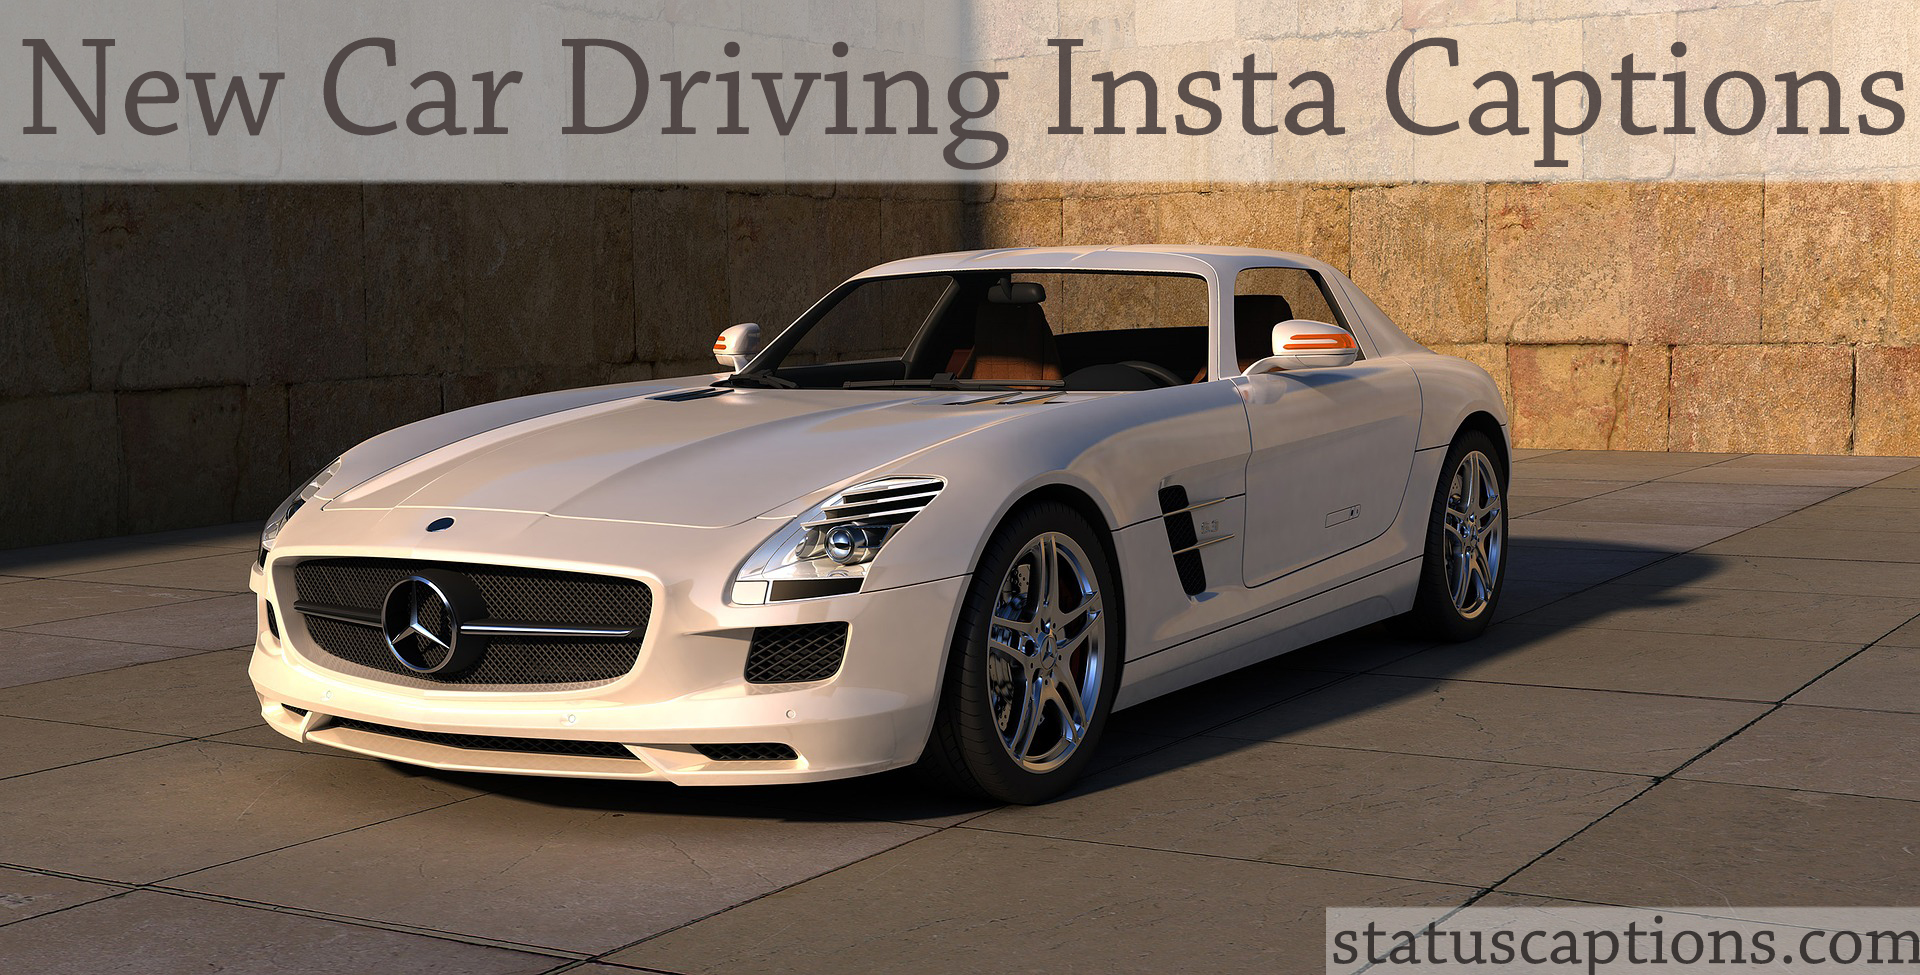 150 Top New Car Instagram Captions In English For You